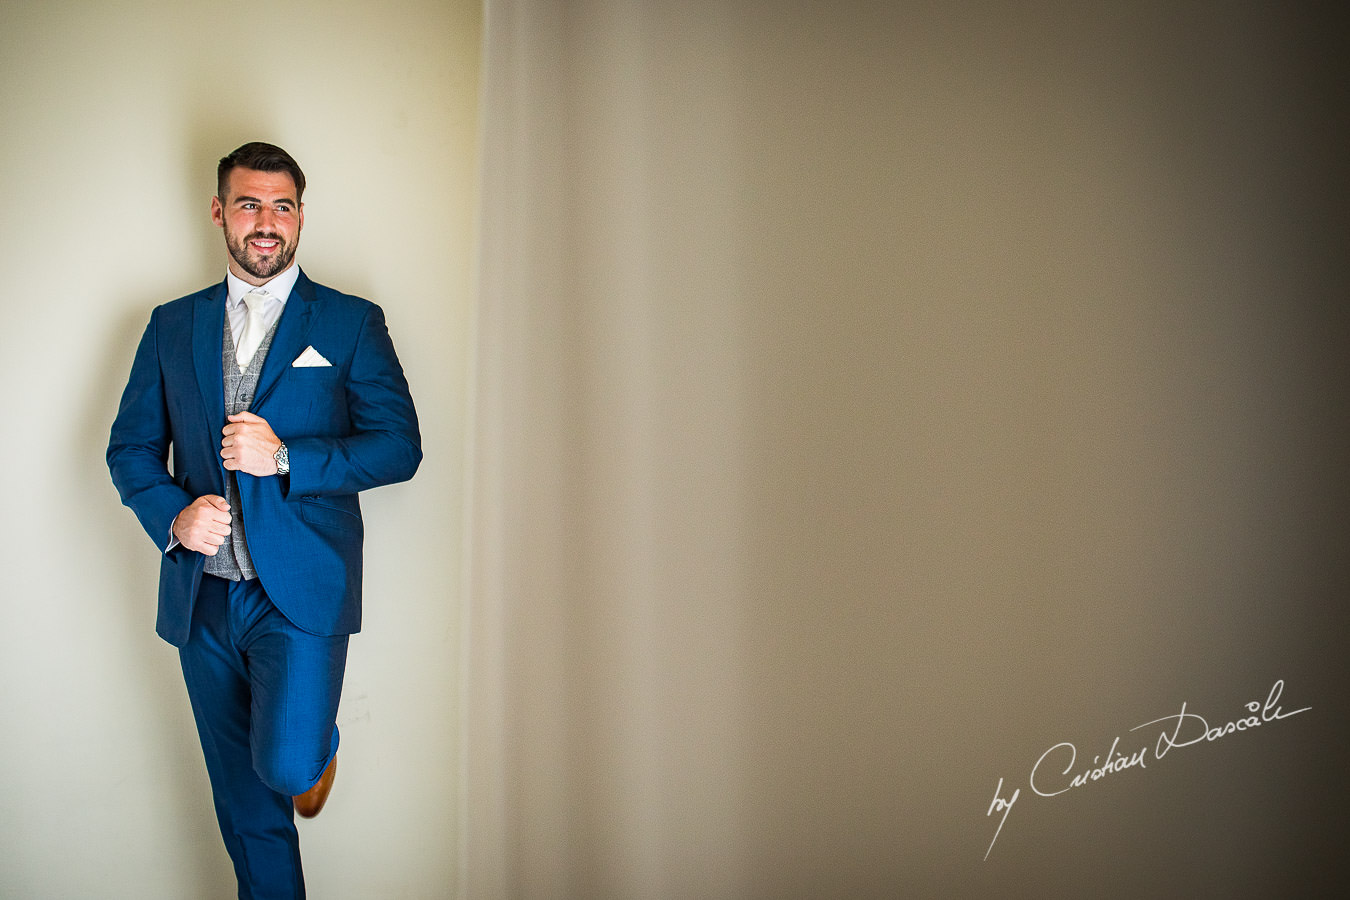 A portrait of the groom, Scott, captured during an Elegant Minthis Hills Wedding, in Paphos, Cyprus.